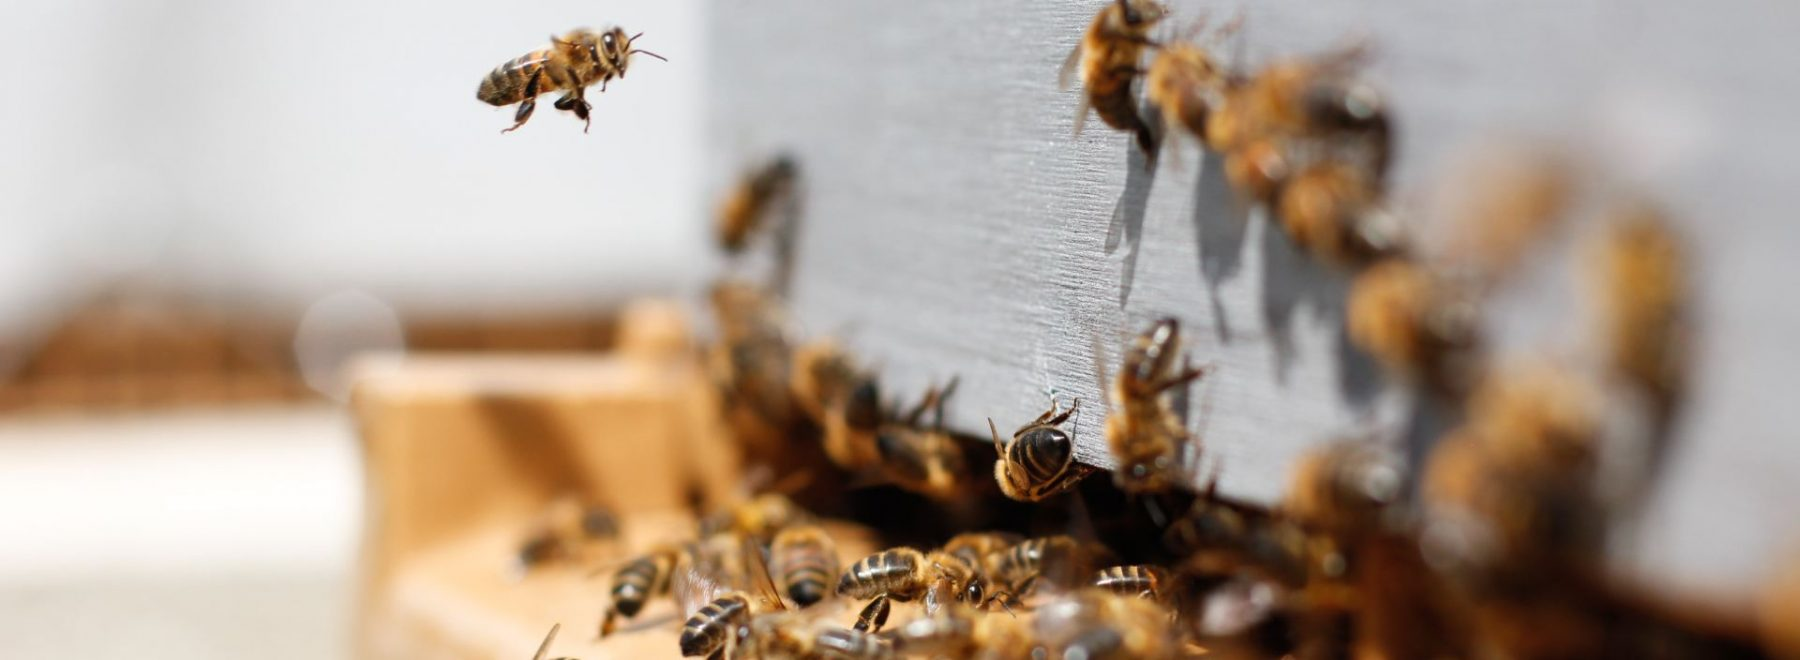 Bees trying to get into a hive